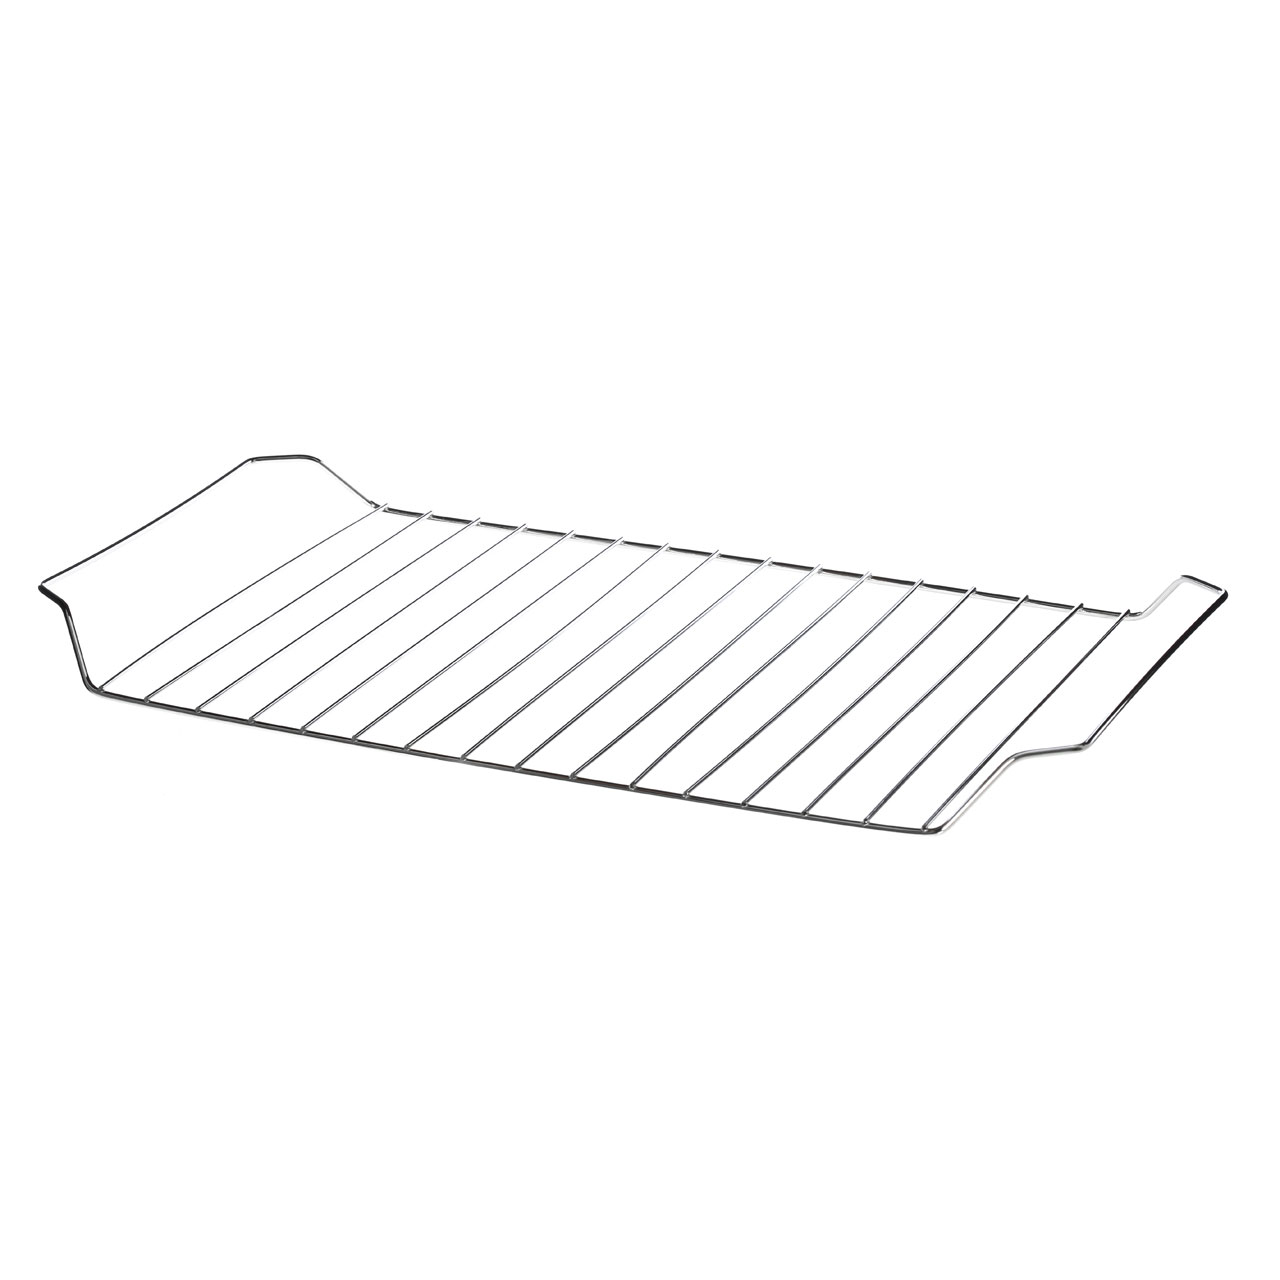 Roasting Trays Set Of 3 Non Stick With Wire Racks Oven